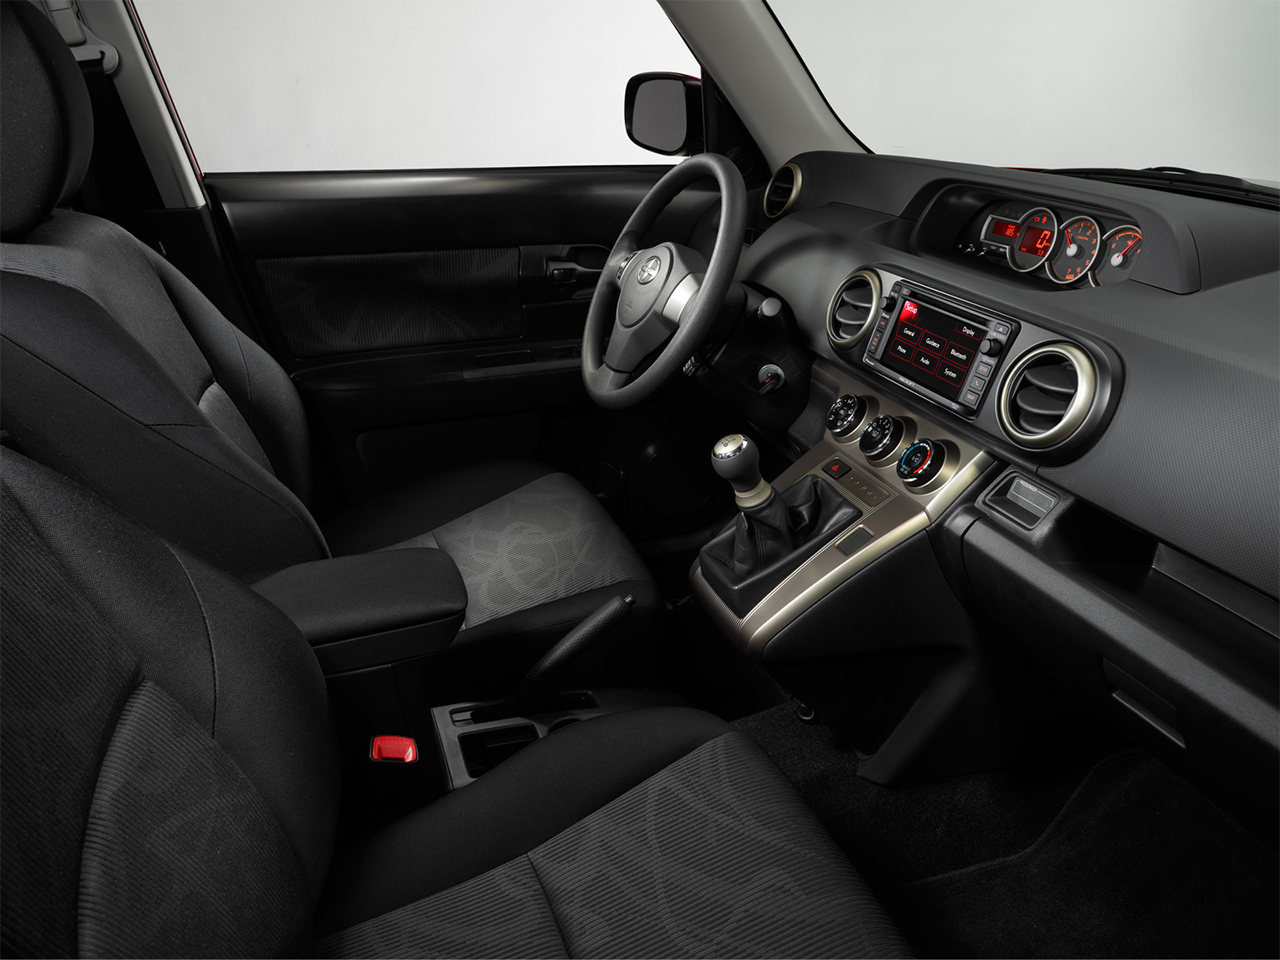 Interior View Of 2015 Scion xB in Orange